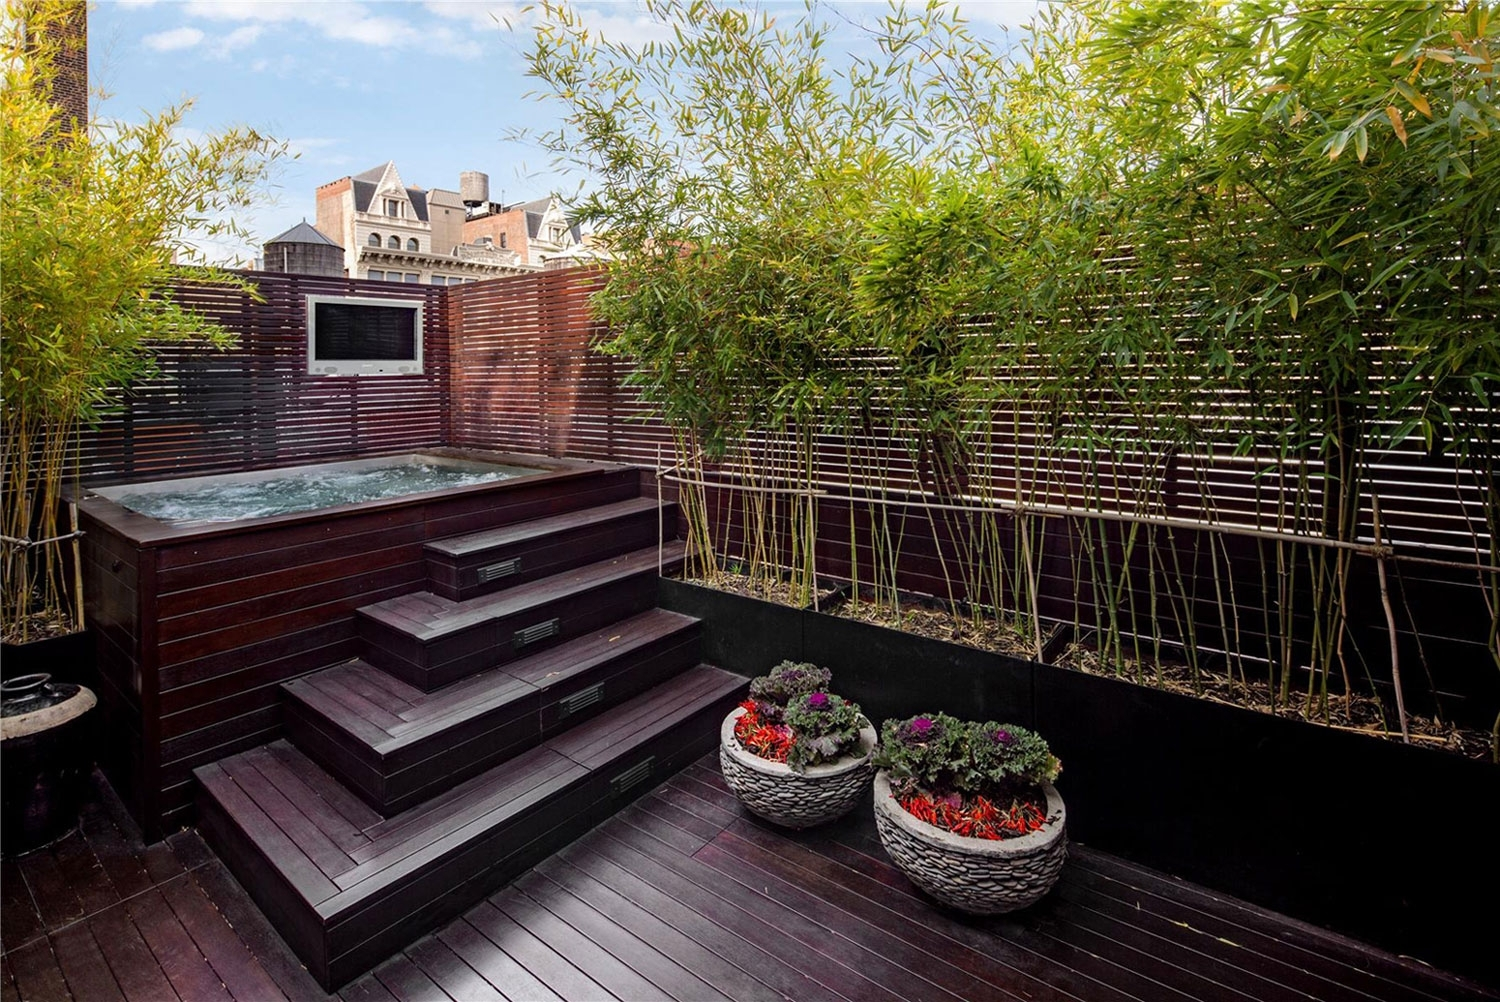 Image of: Garden Design Garden Design With Great Tips For Deck Privacy For Bamboo Landscaping Bamboo Landscaping As A Plant